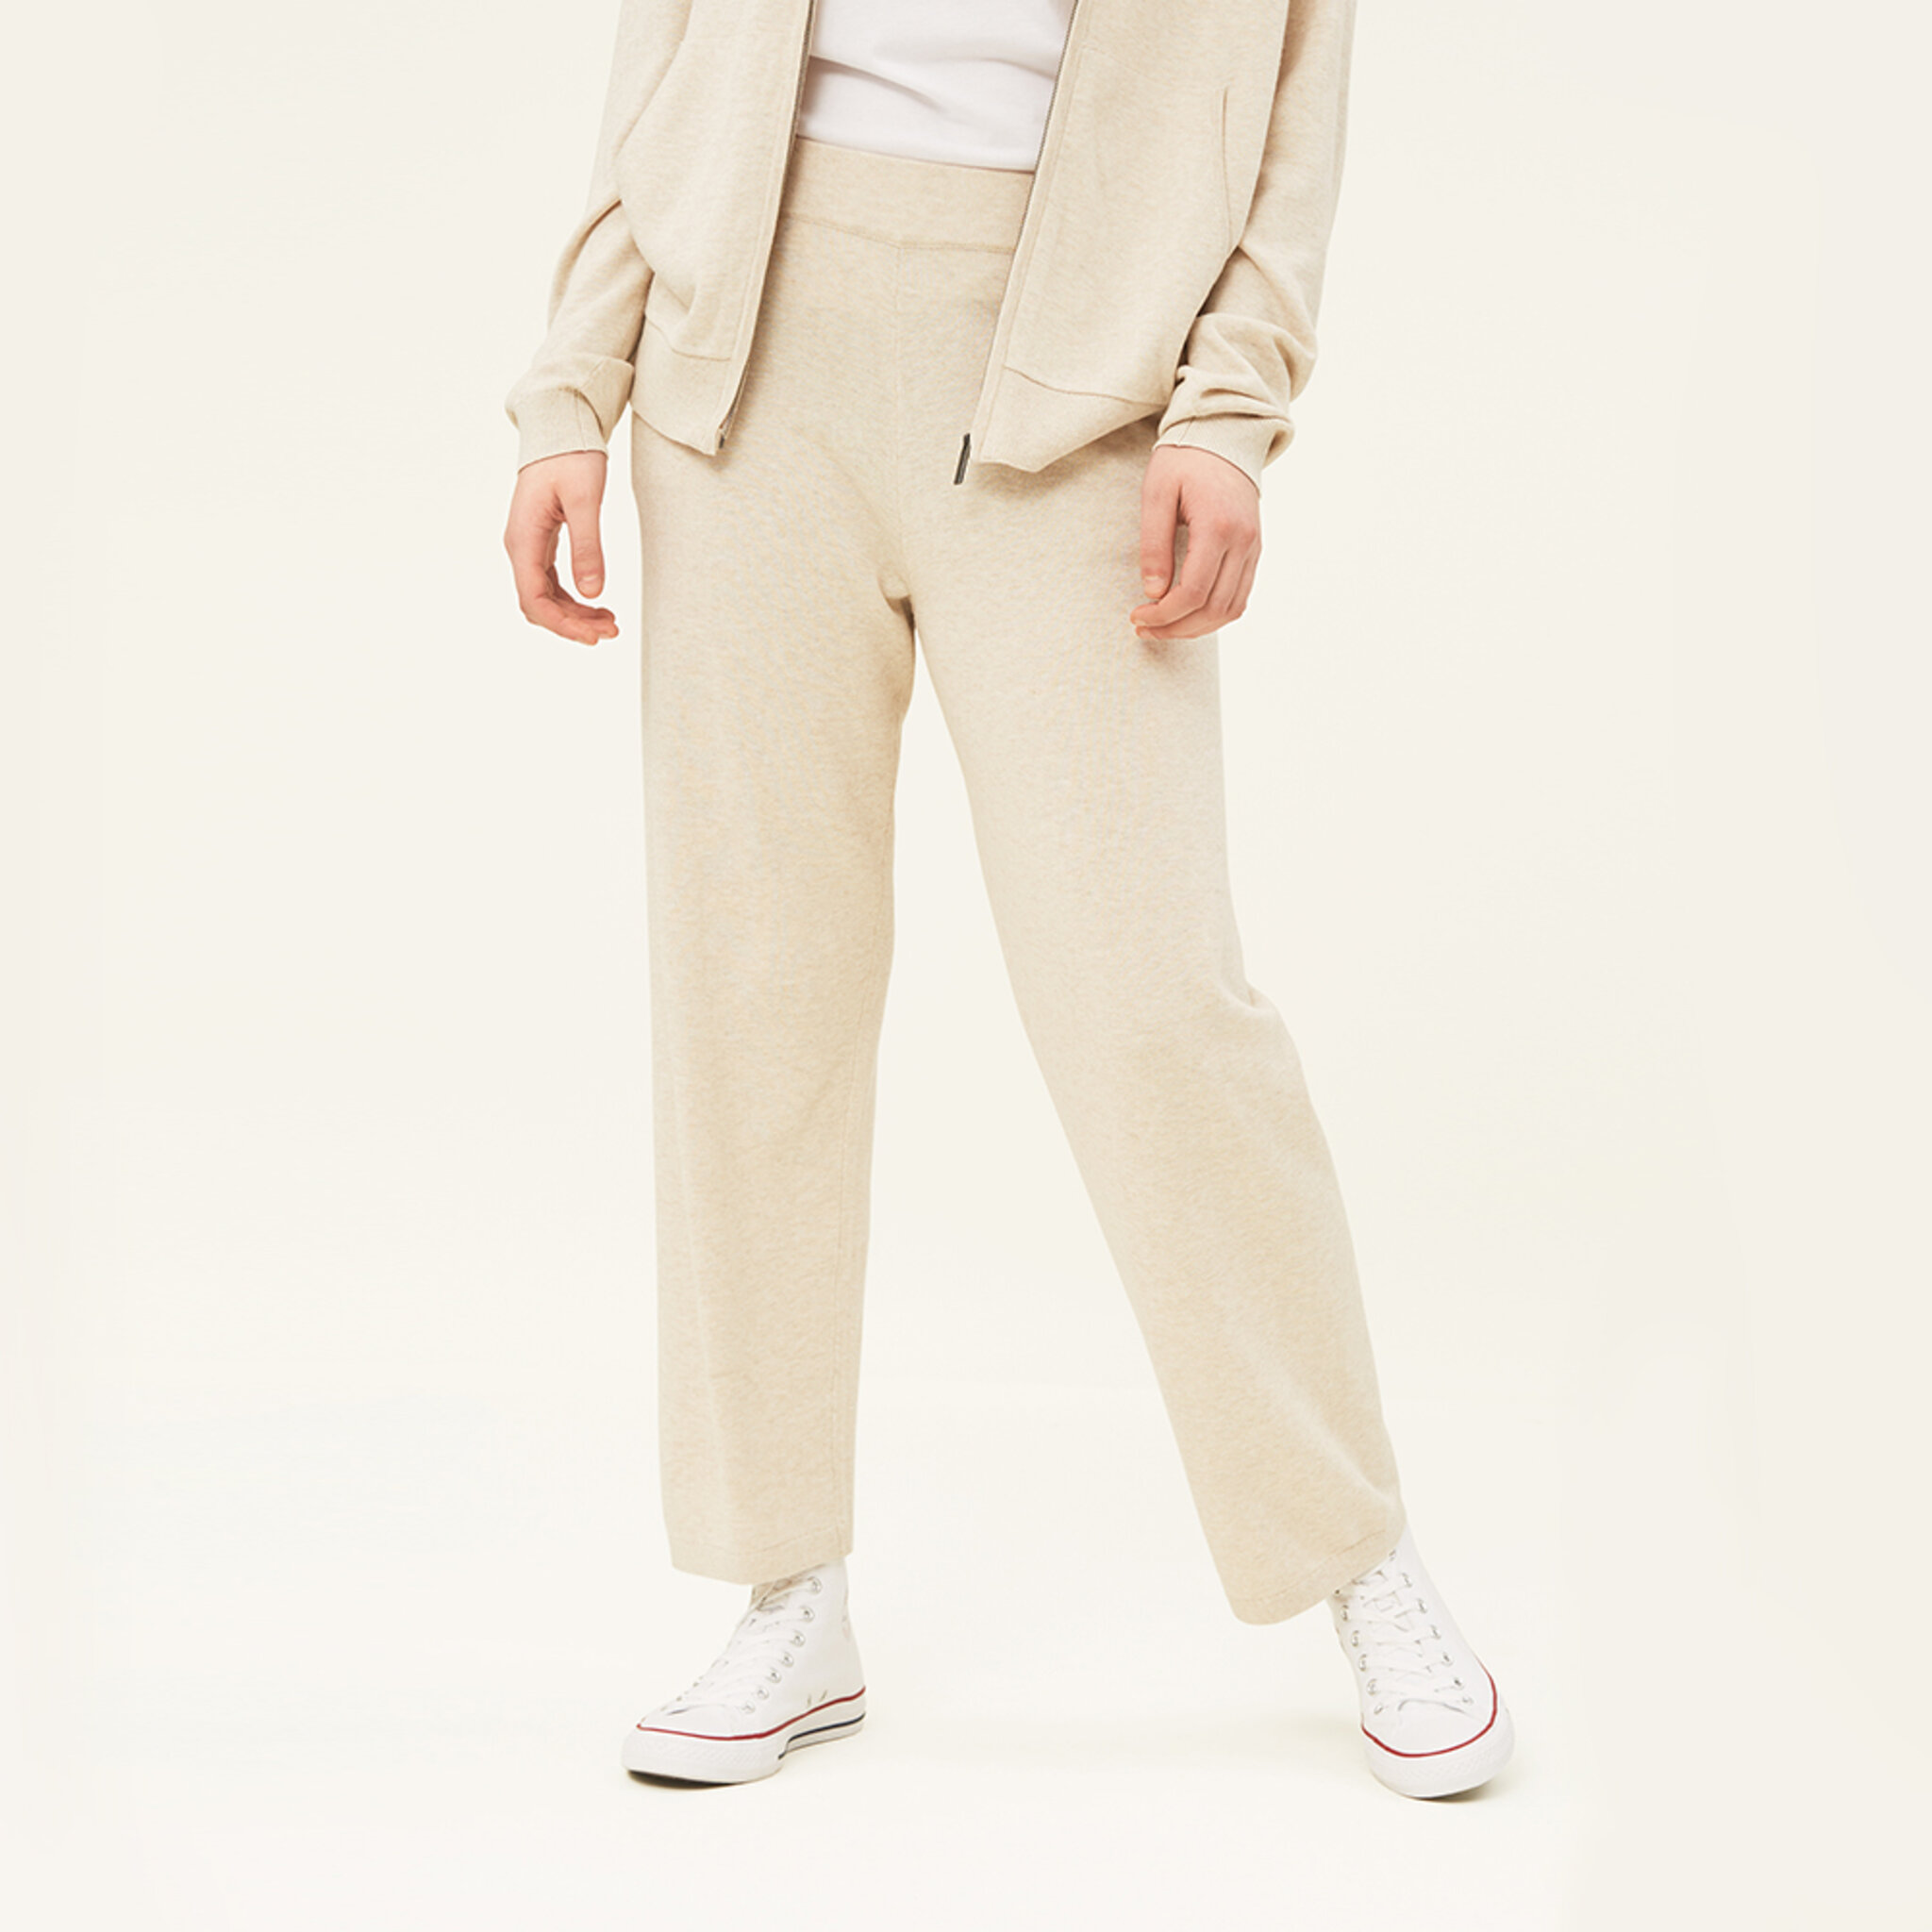 Des Cotton/Bamboo Knitted Pants